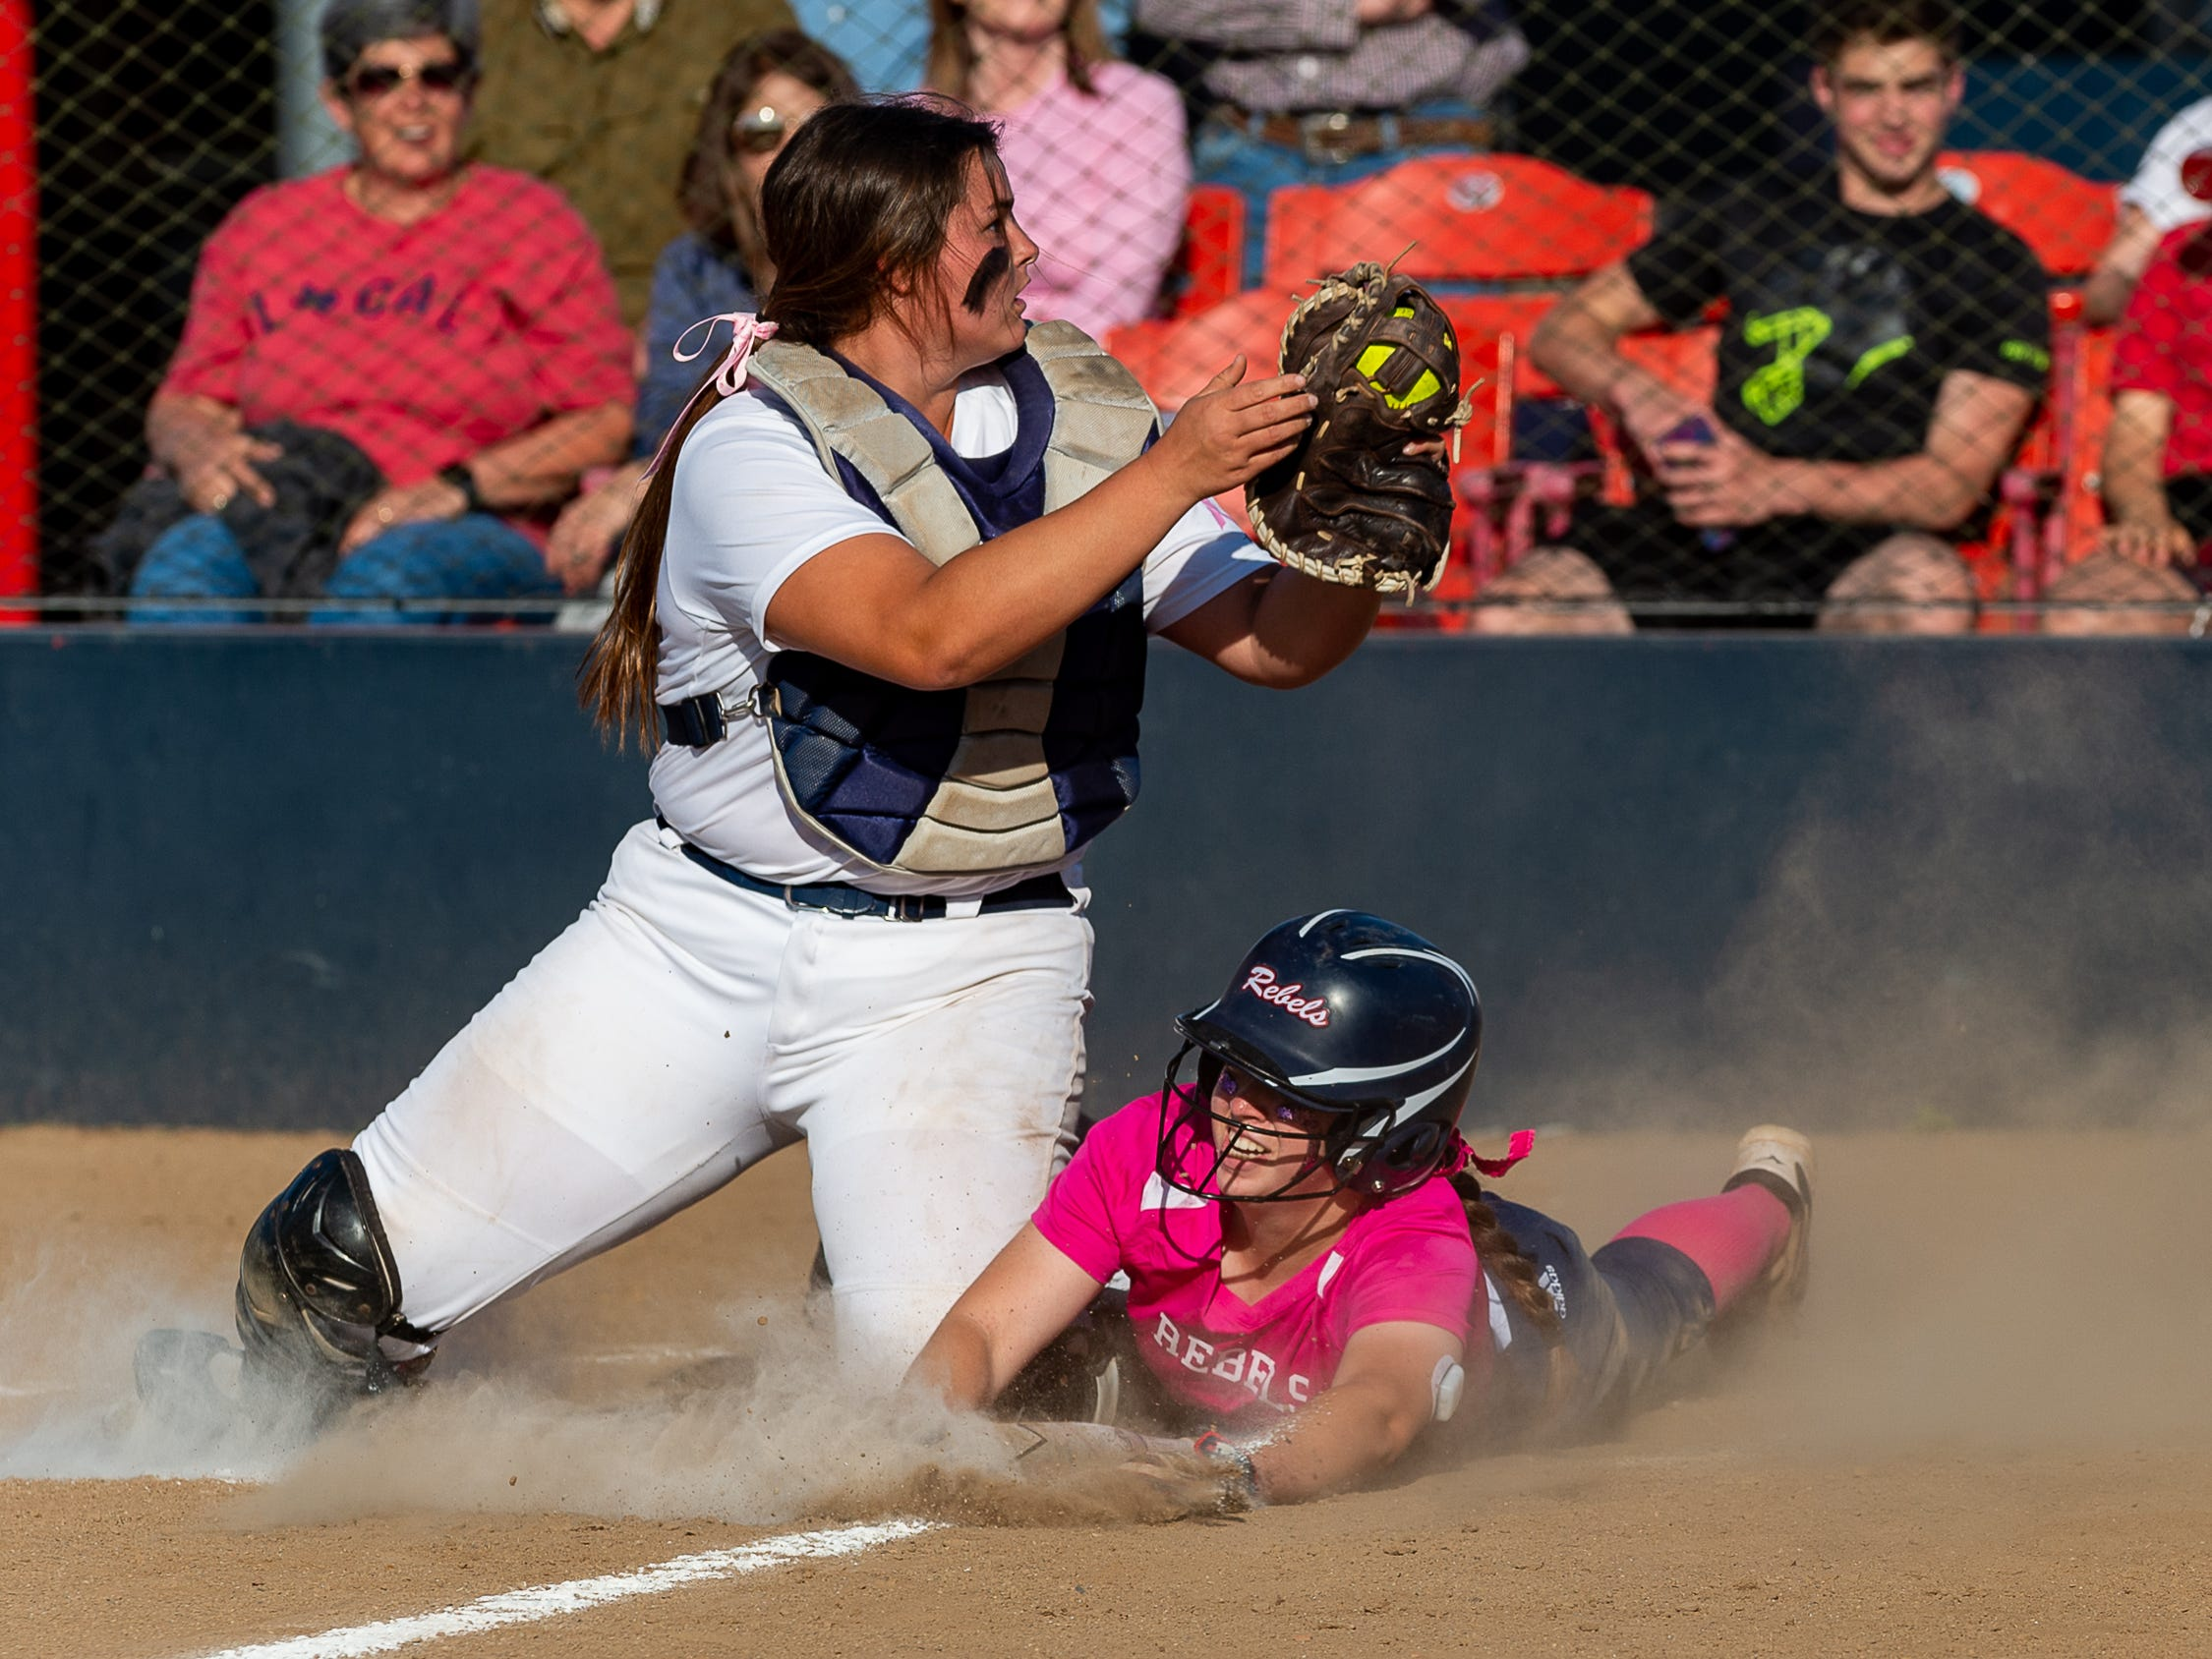 Rebels Olivia Edrey slides into home as Cougars catcher Hannah Parker lays down the tag as Teurlings Catholic host St Thomas More Softball. Tuesday, April 2, 2019.